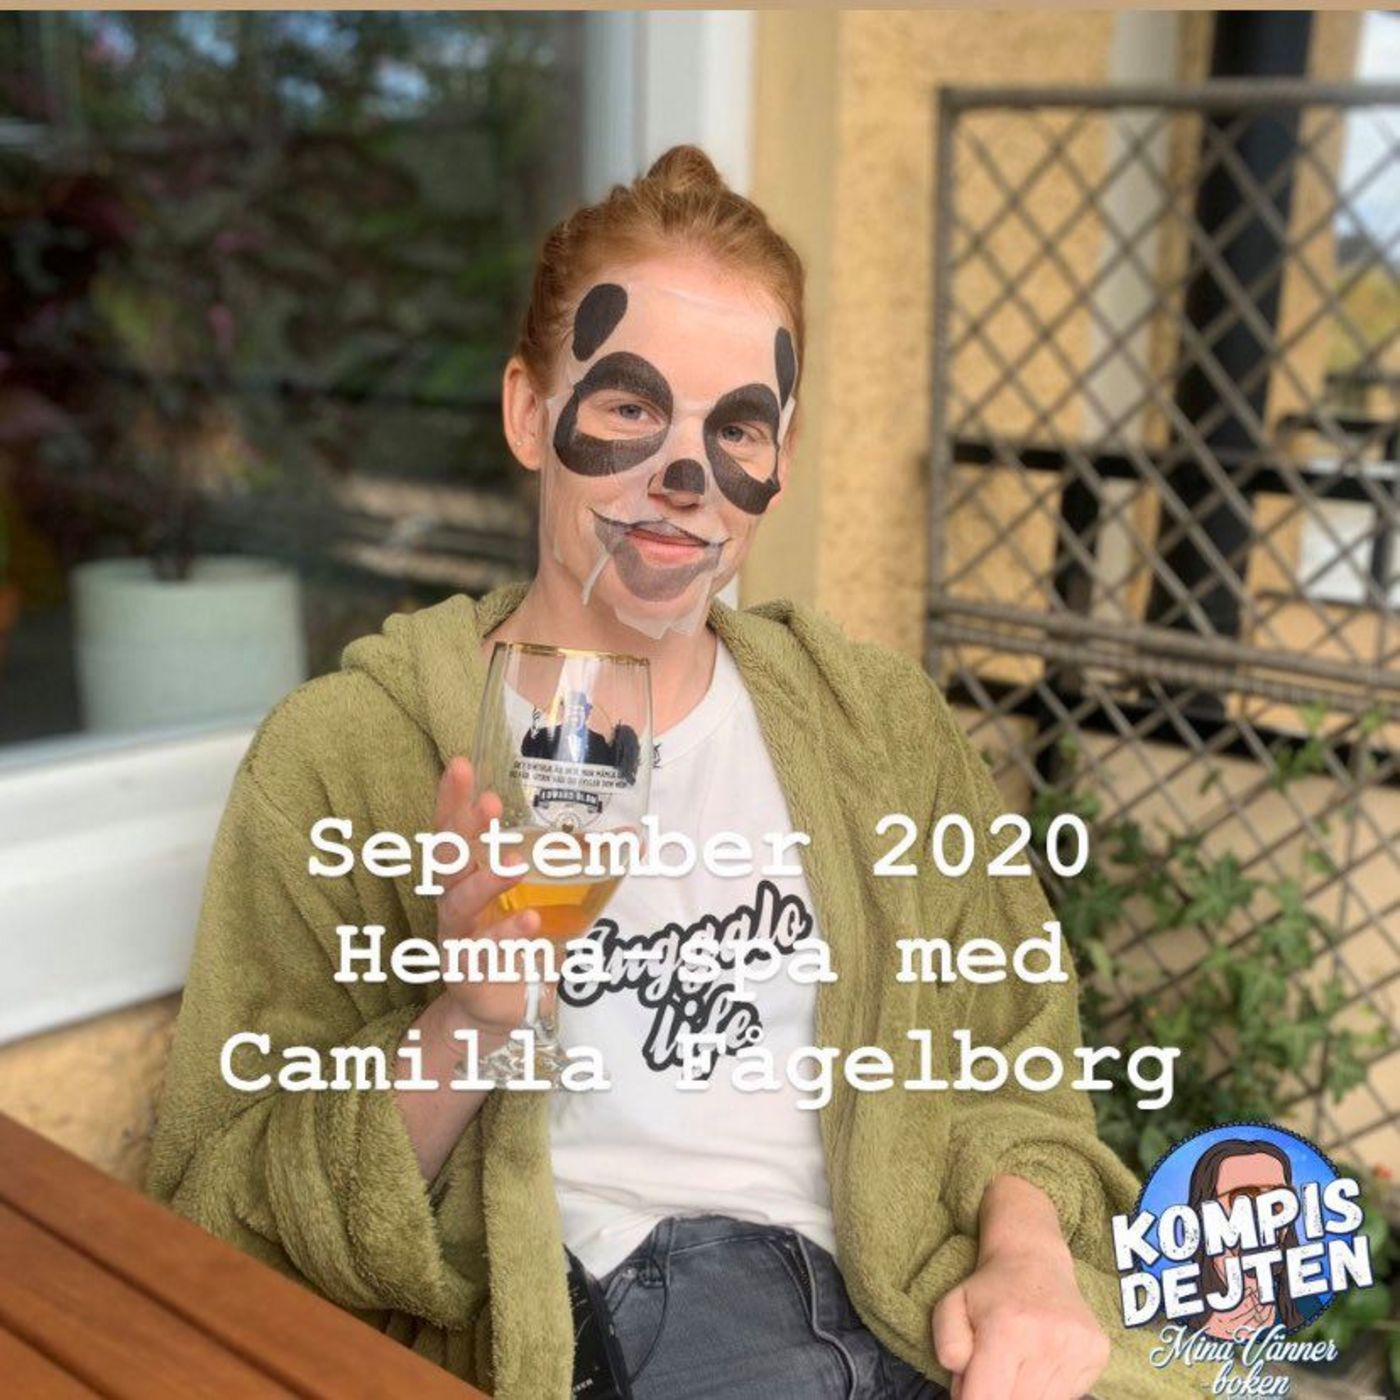 Kompisdejten september 2020 TEASER